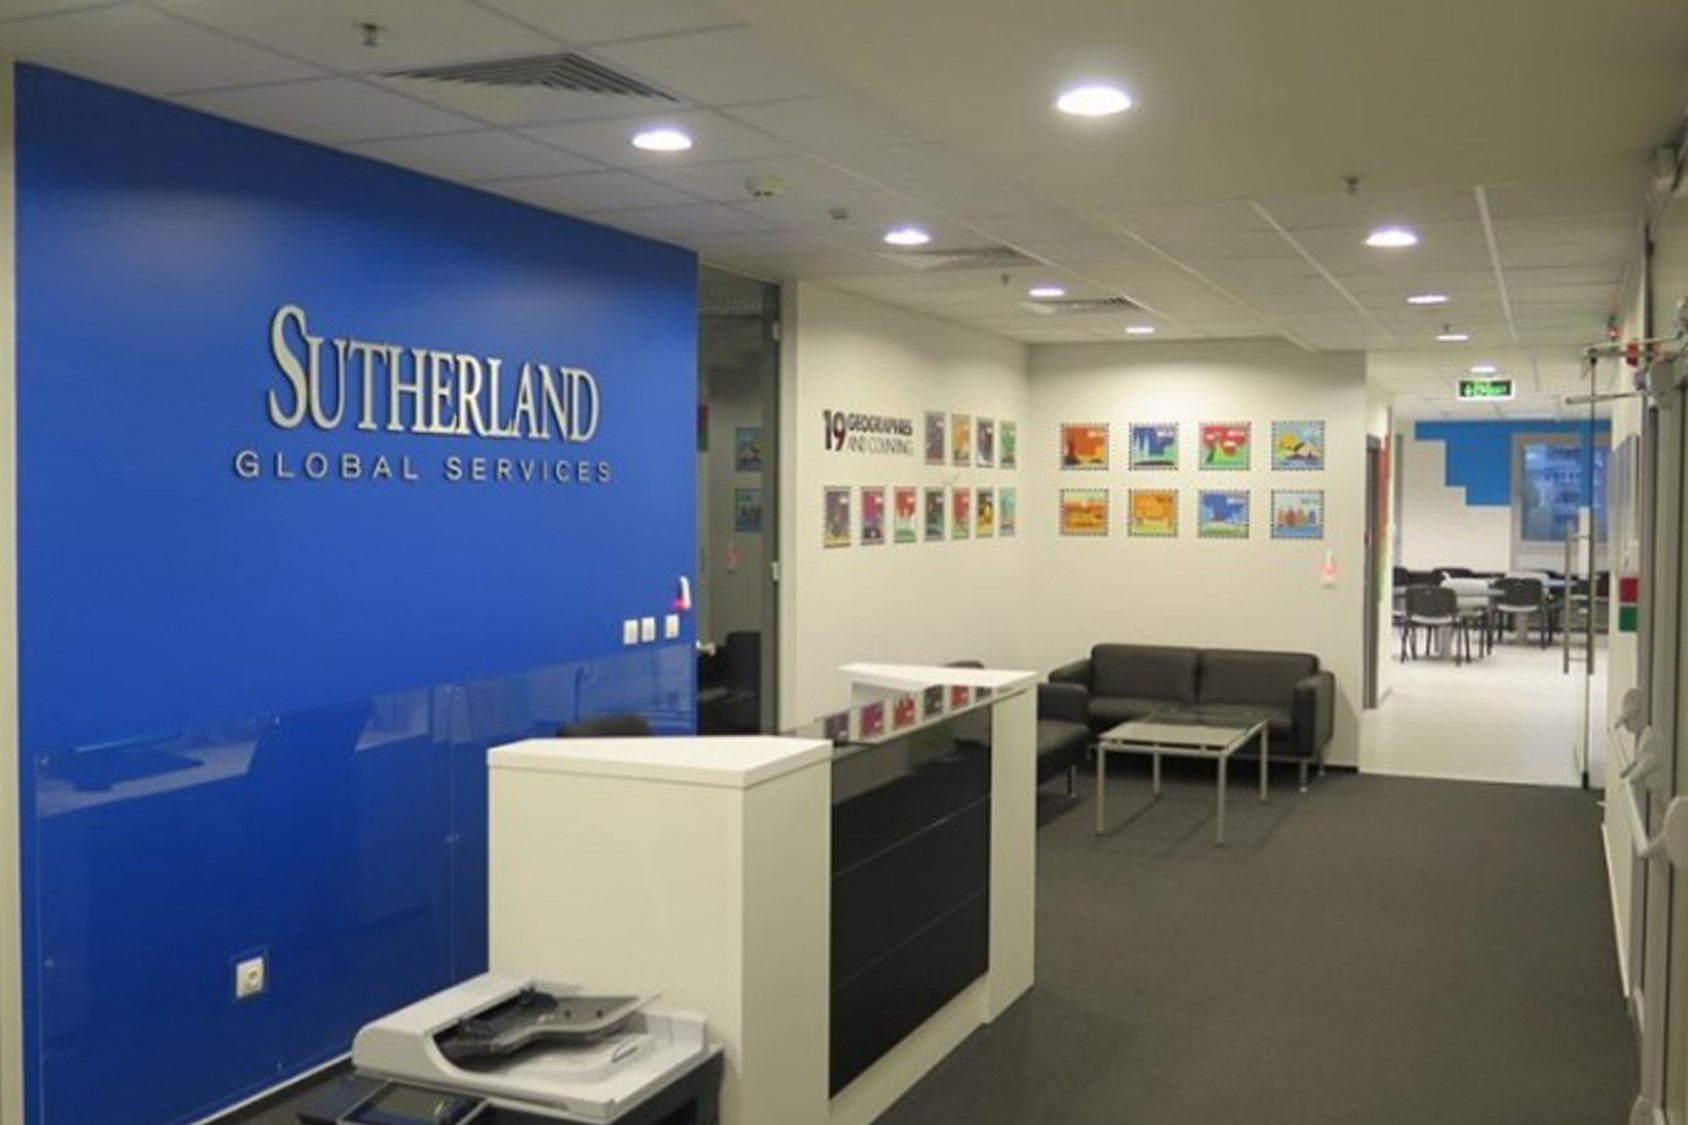 Waiting room with Sutherland logo on a blue wall